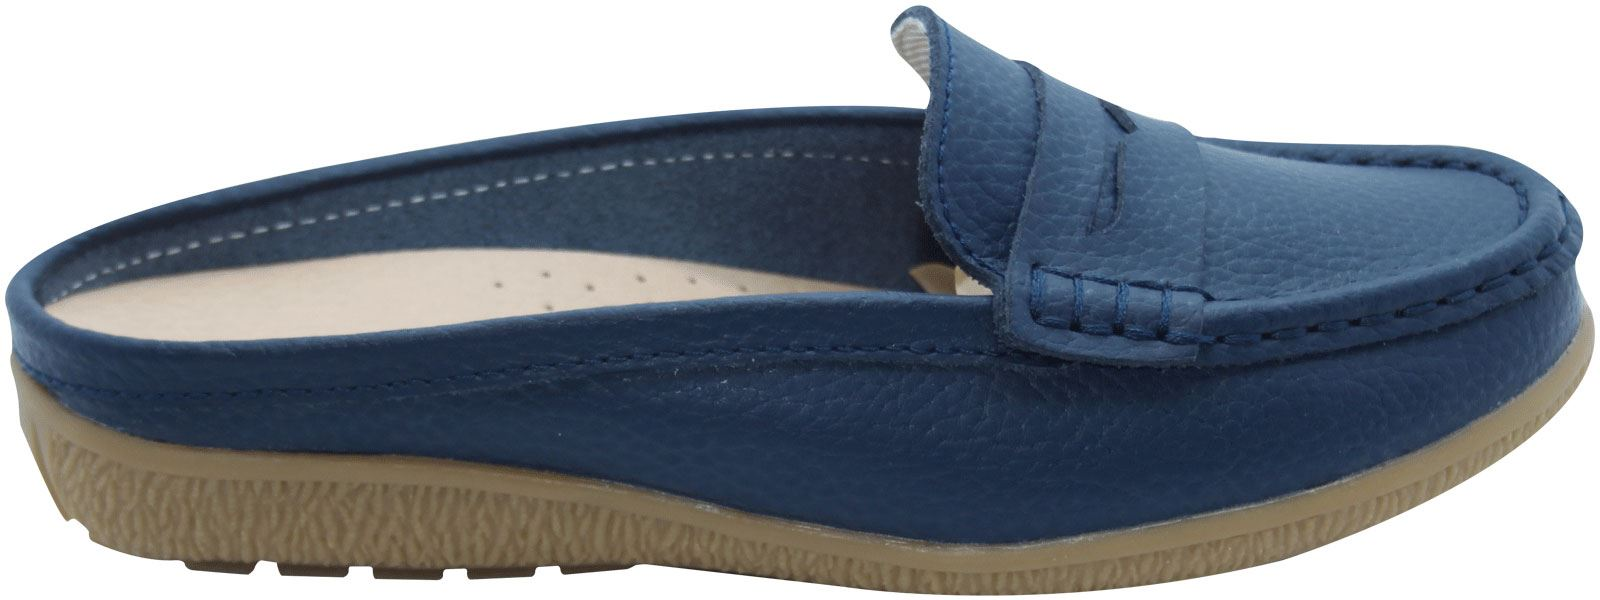 Ladies-Leather-Loafer-Mules-Comfort-Shoes-Womens-Slider-Moccasins-Shoes thumbnail 9